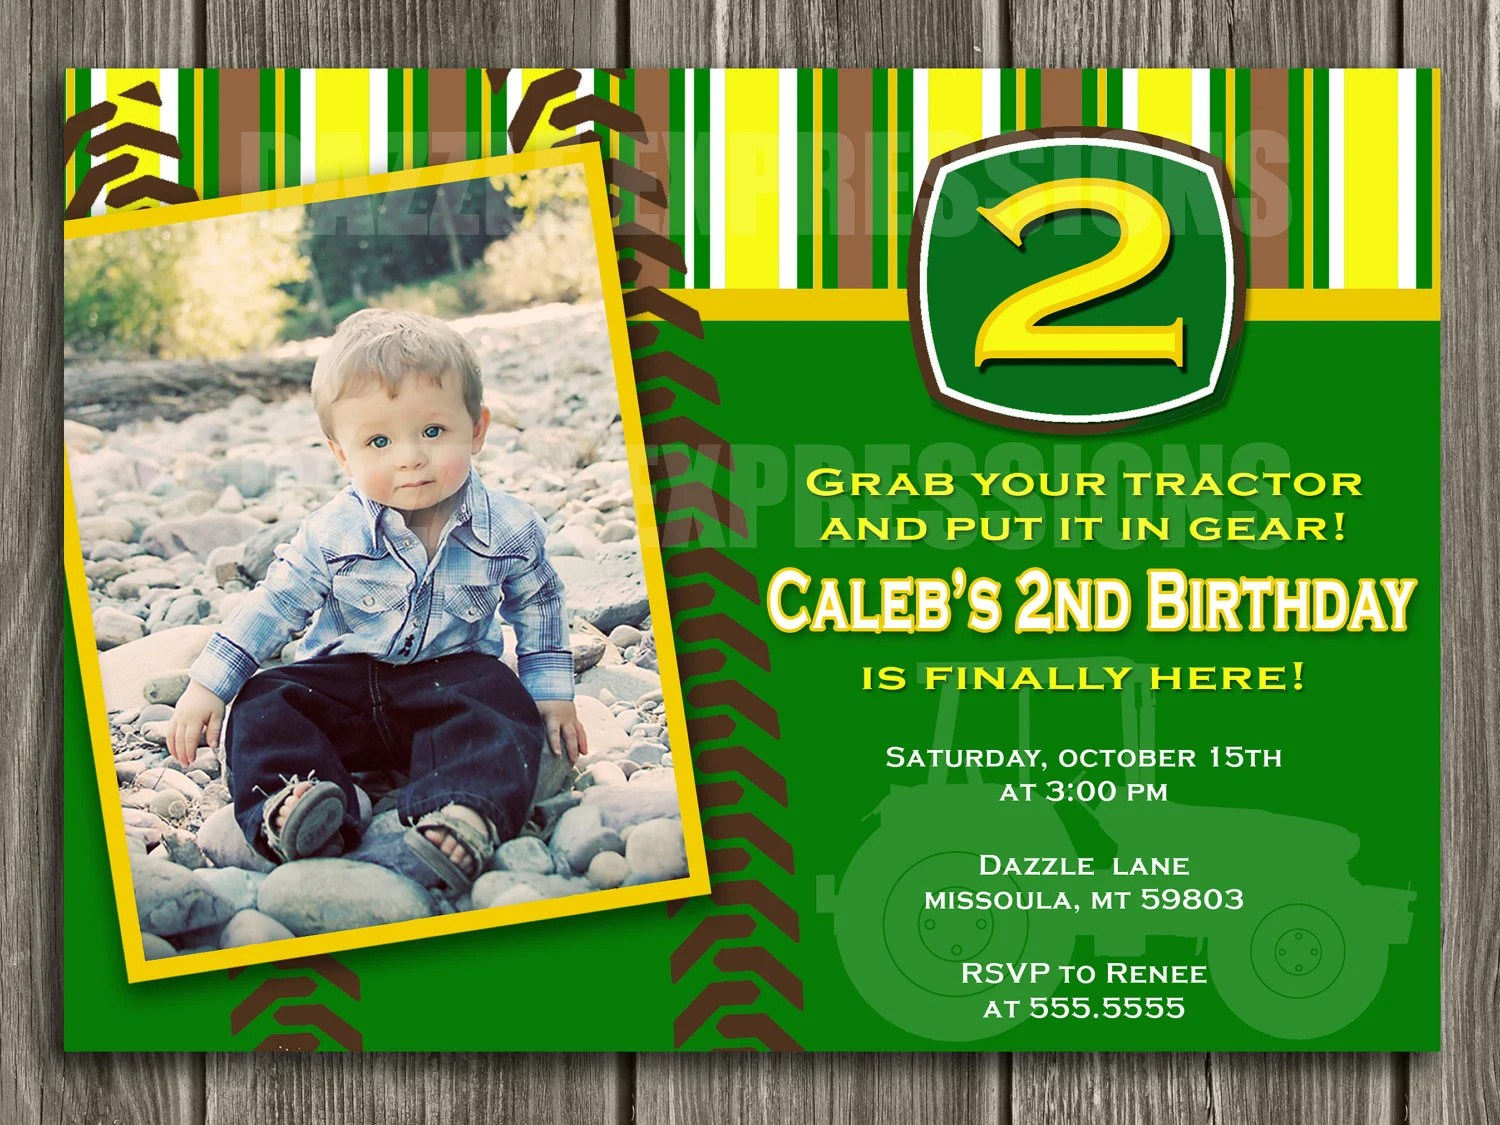 Tractor Birthday Invitation - FREE thank you card included